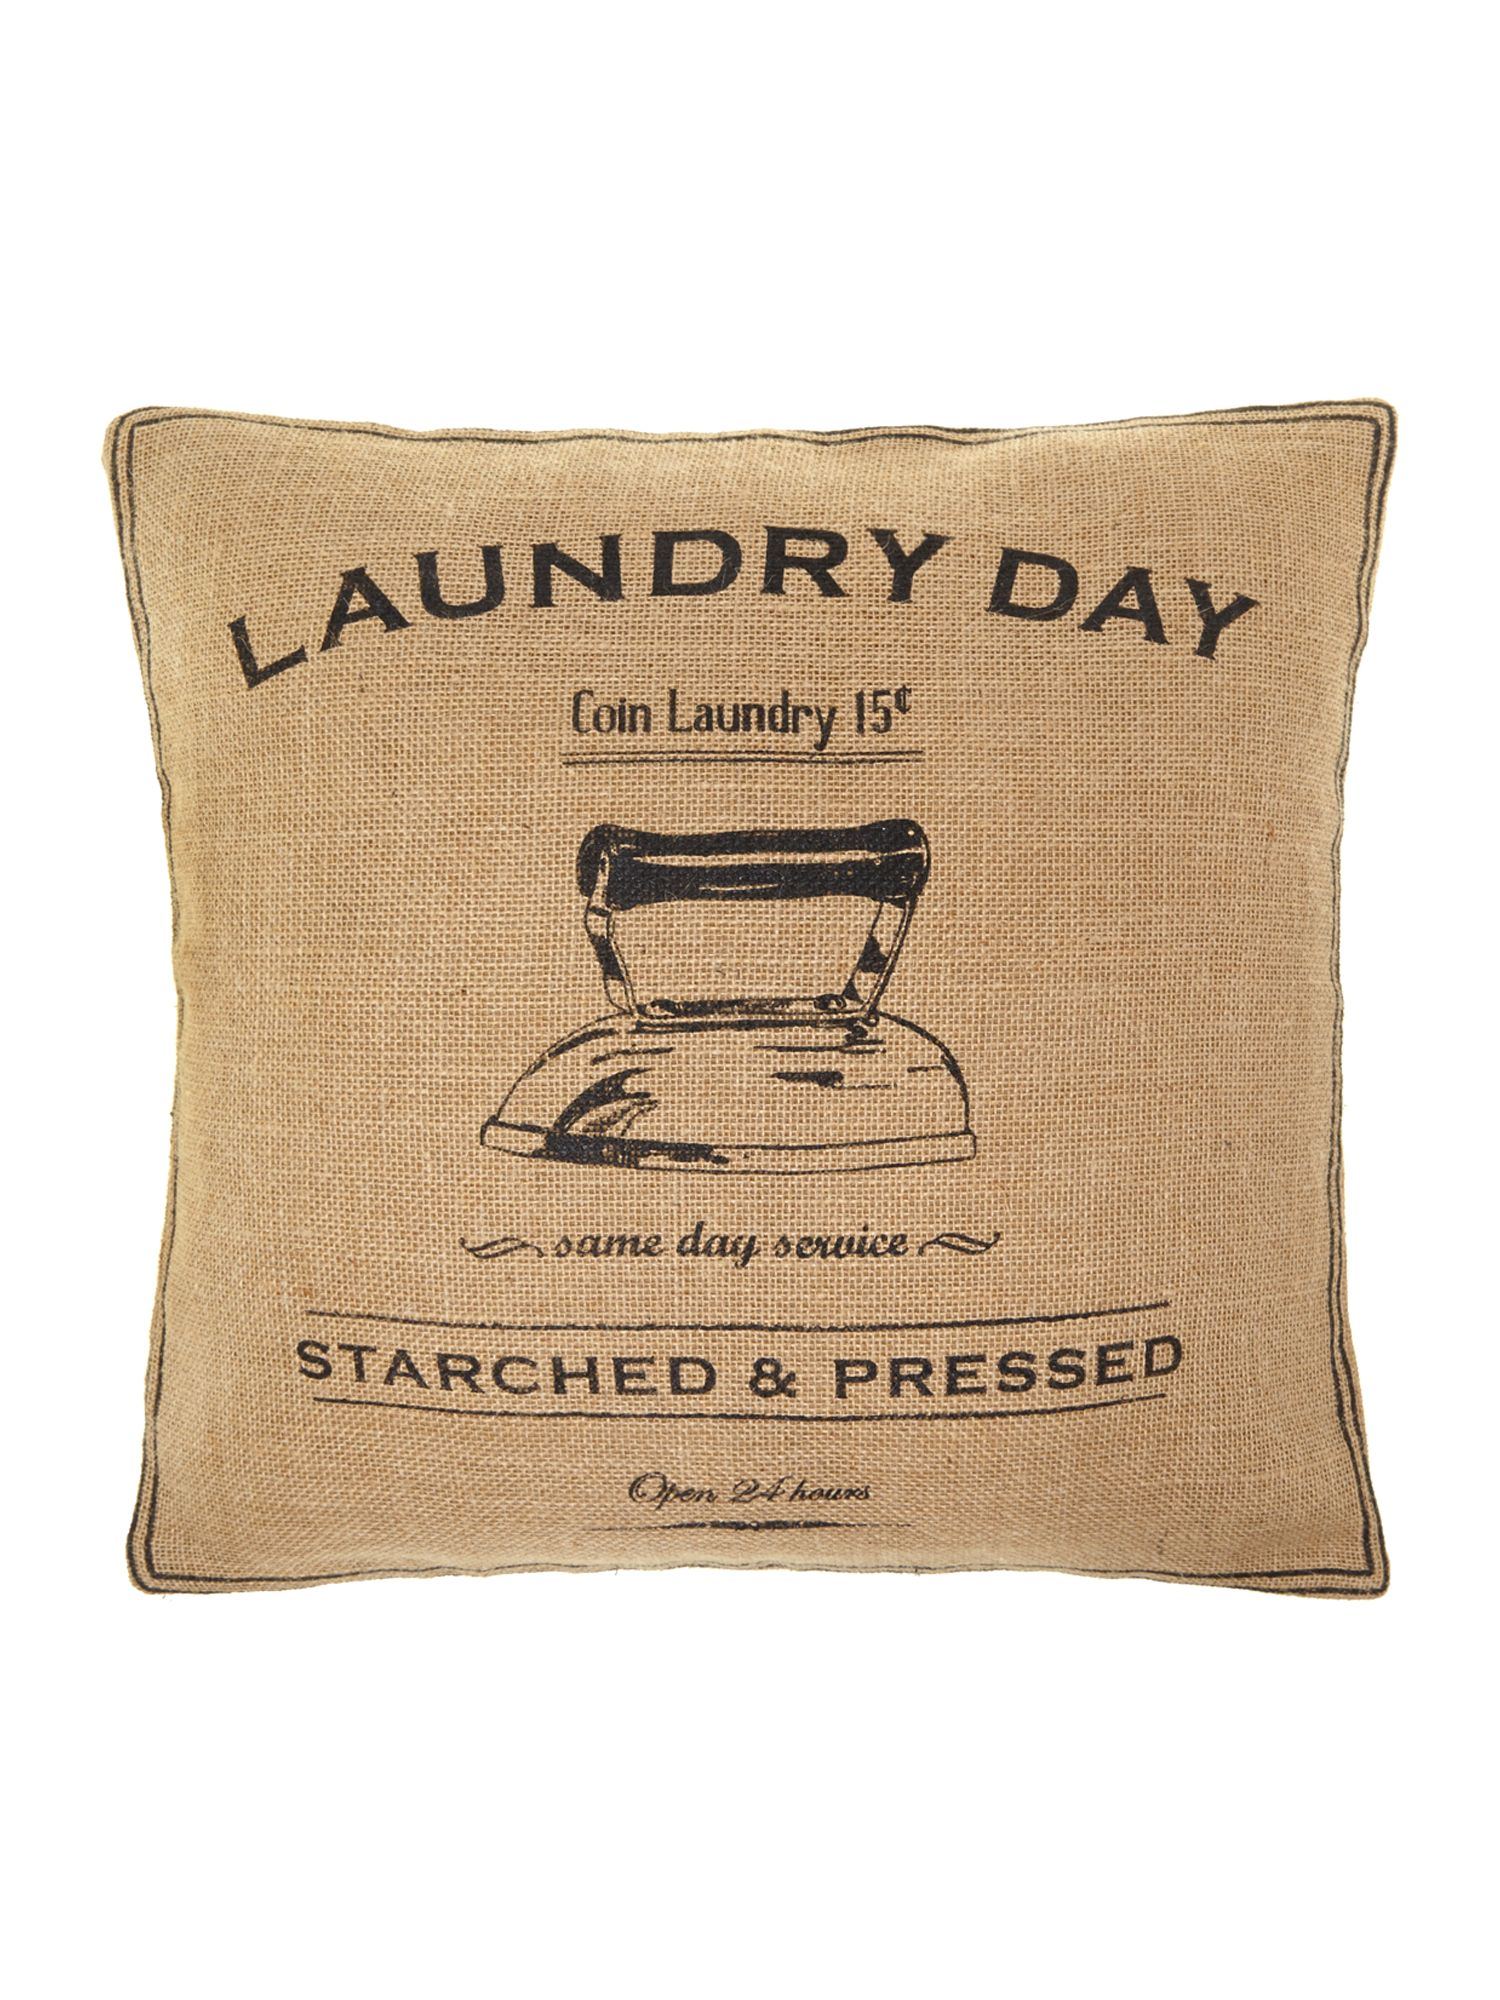 Vintage laundry advert cushion